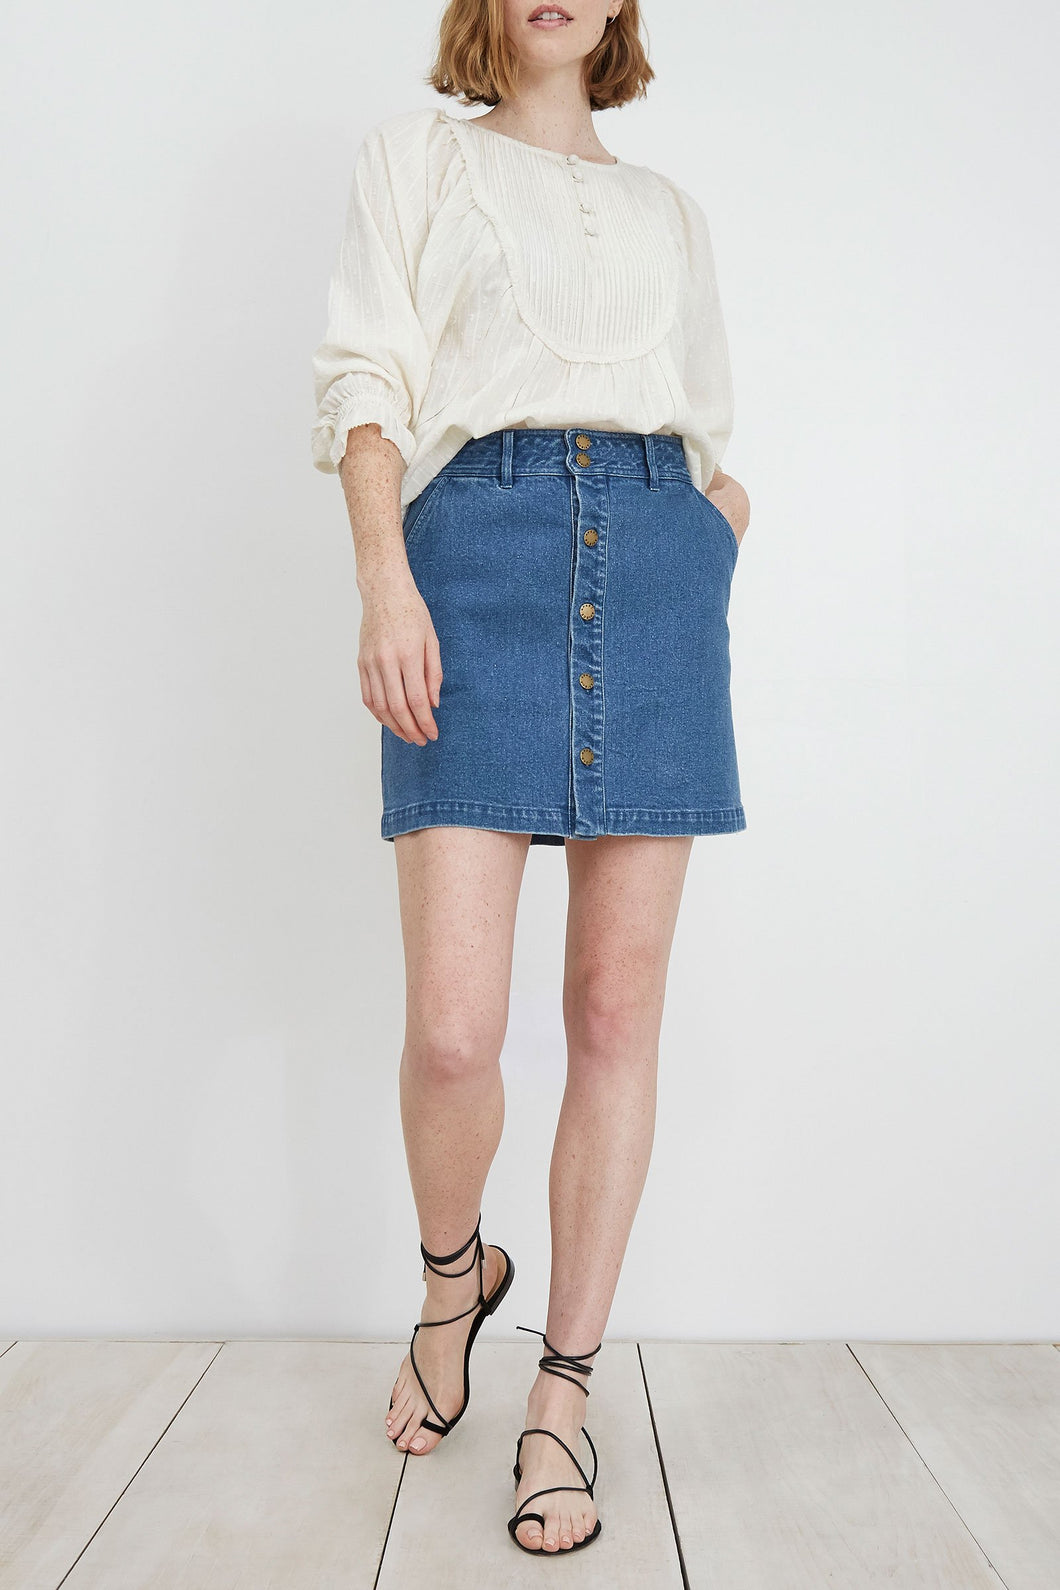 Apiece Apart Chloe Denim Skirt